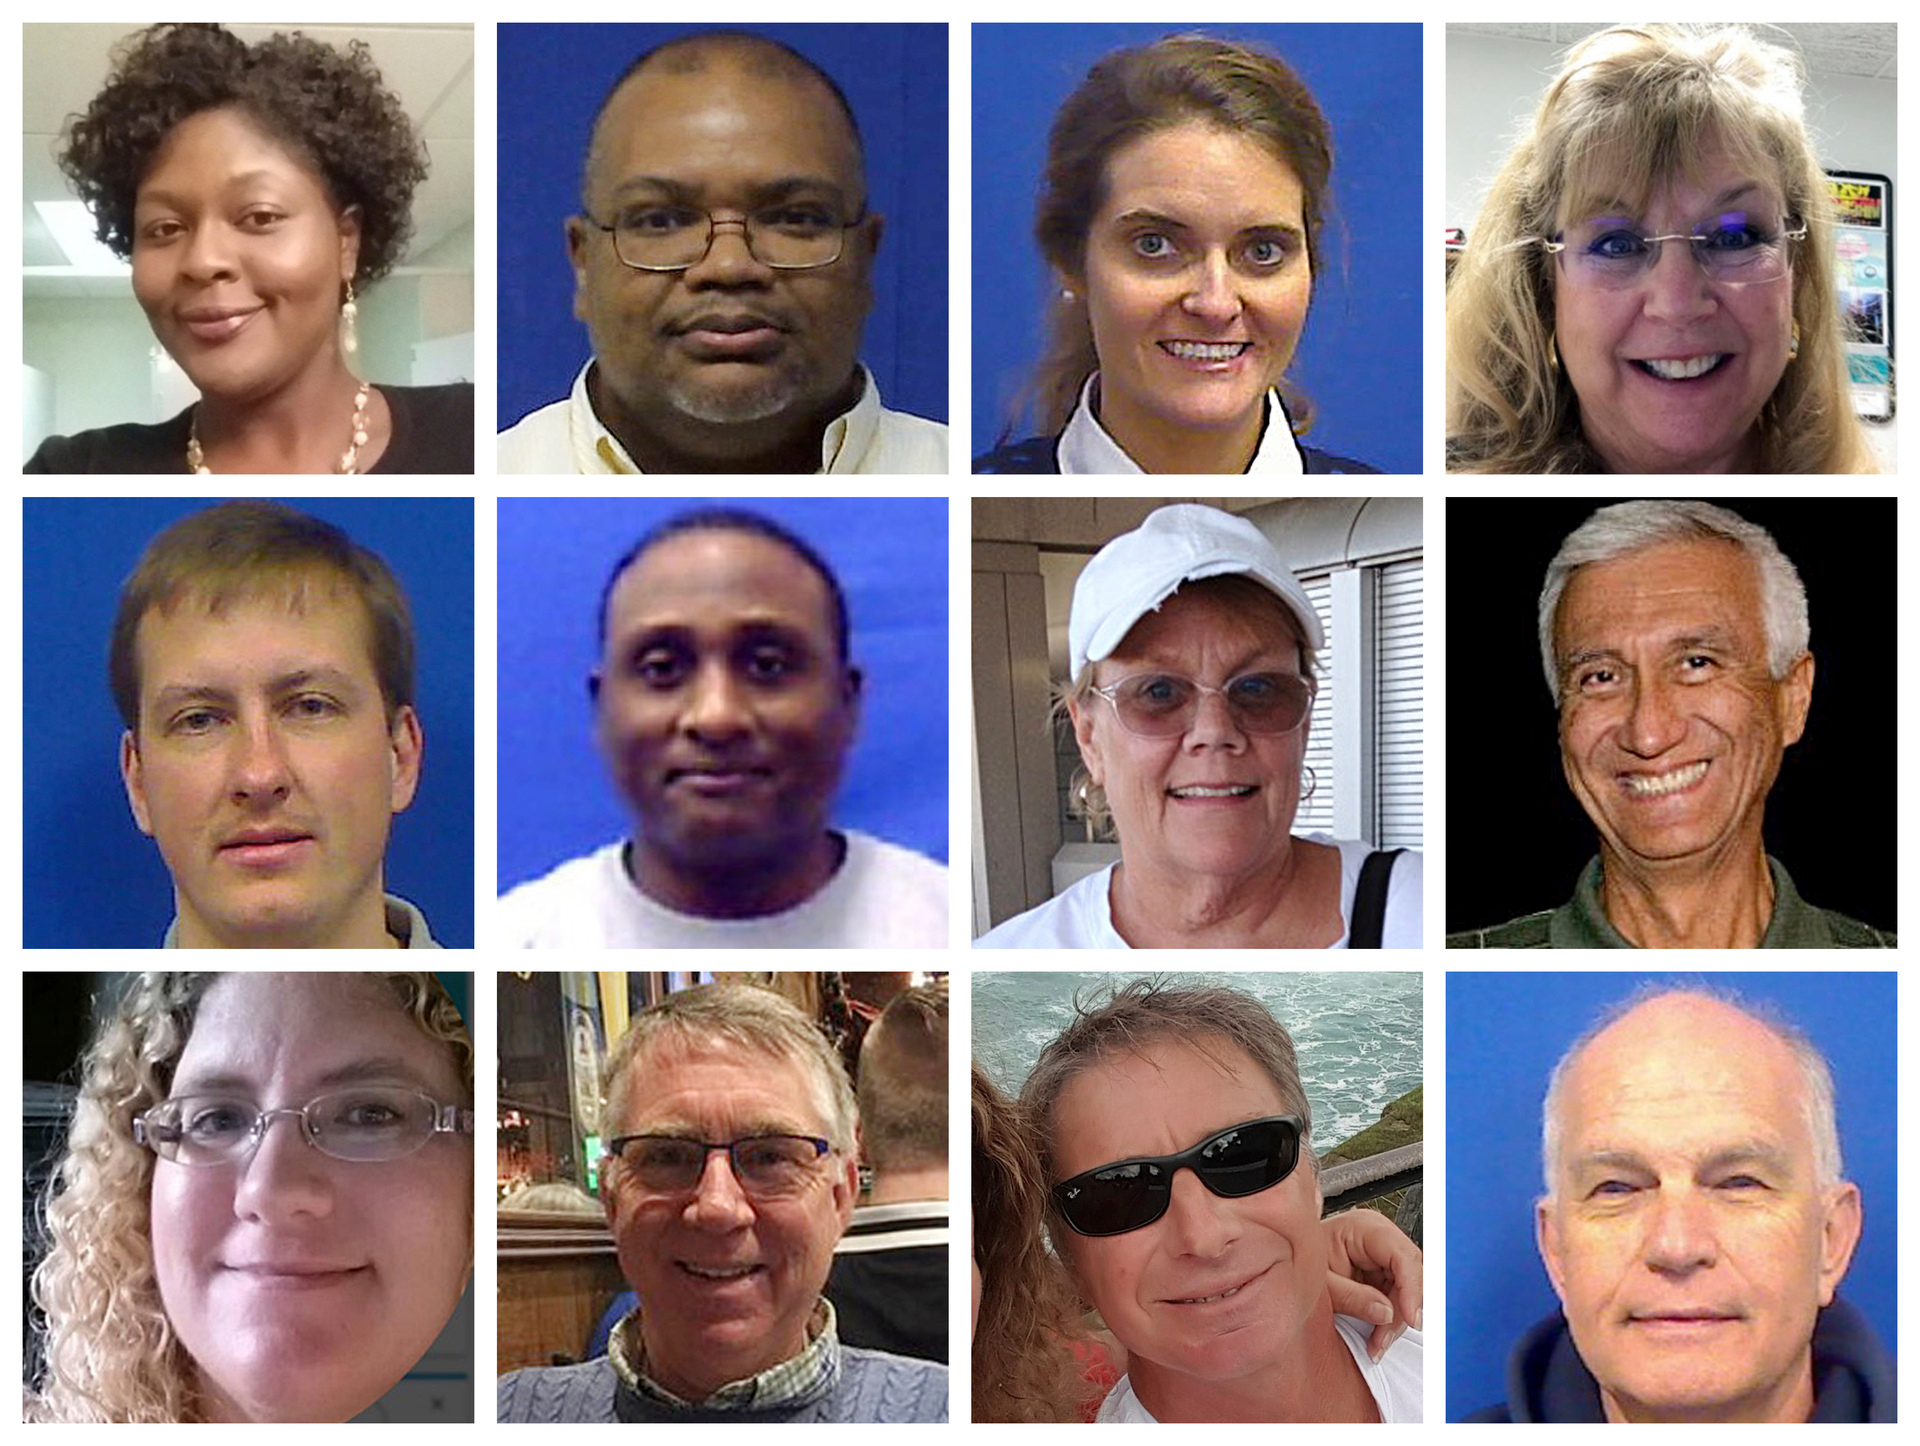 The victims of the Virginia Beach mass shooting